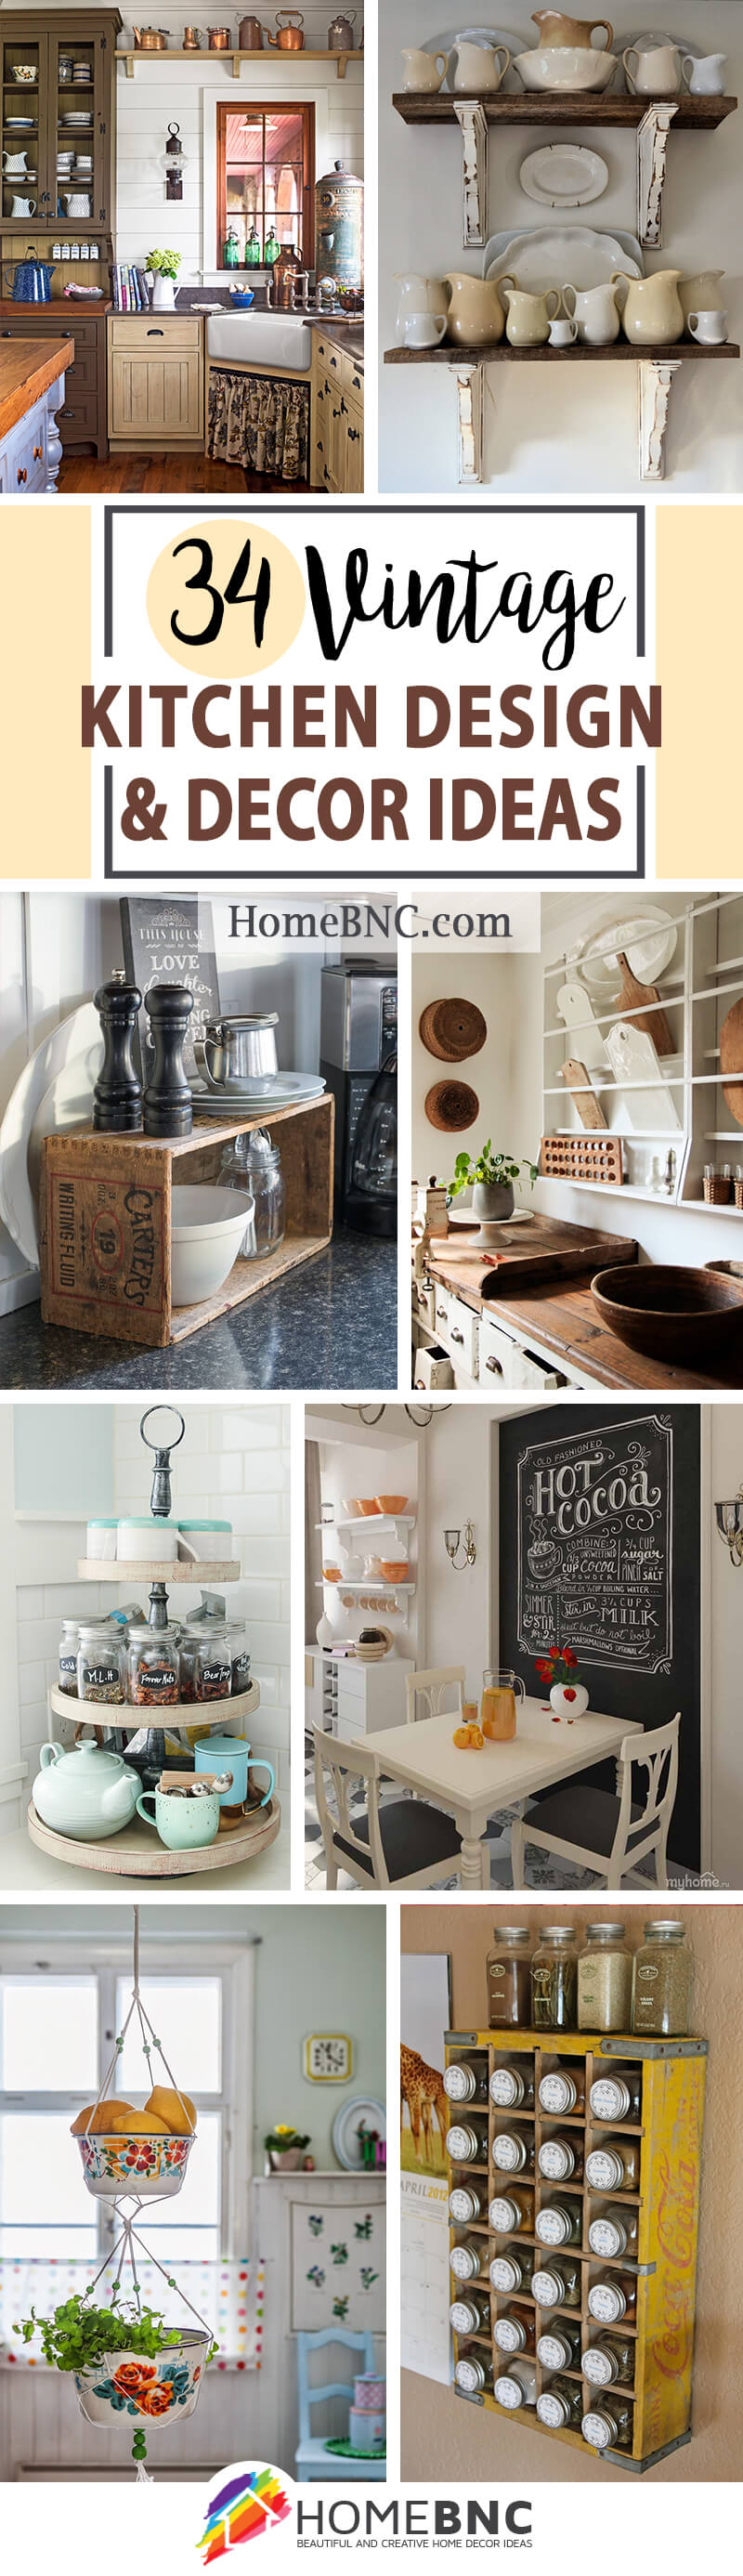 34 Trendy Vintage Kitchen Design And Decor Ideas To Impress Your Guests